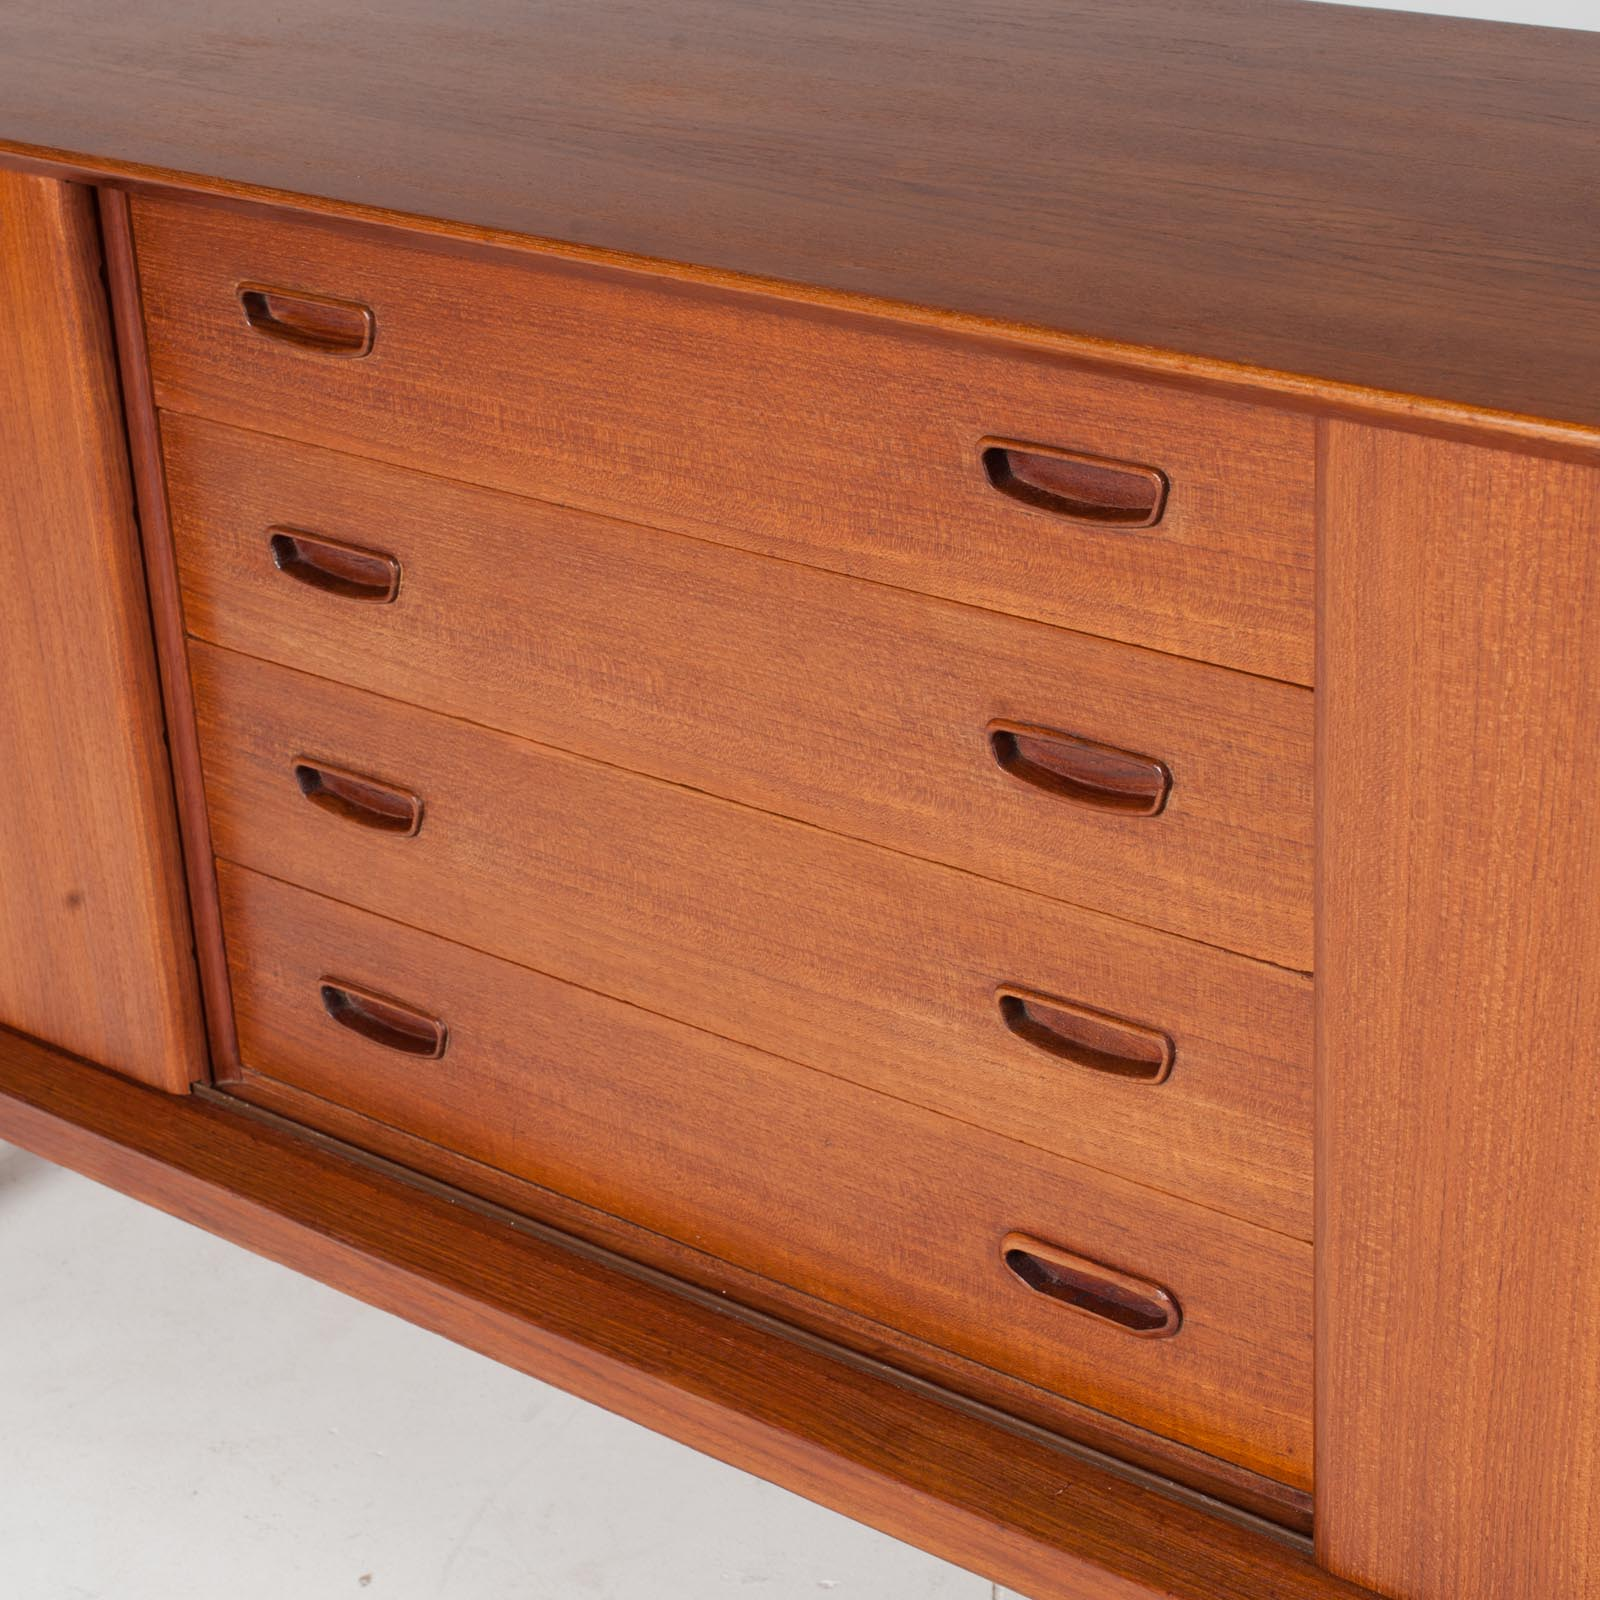 Sideboard By Clause And Son In Teak, 1960s, Denmark11